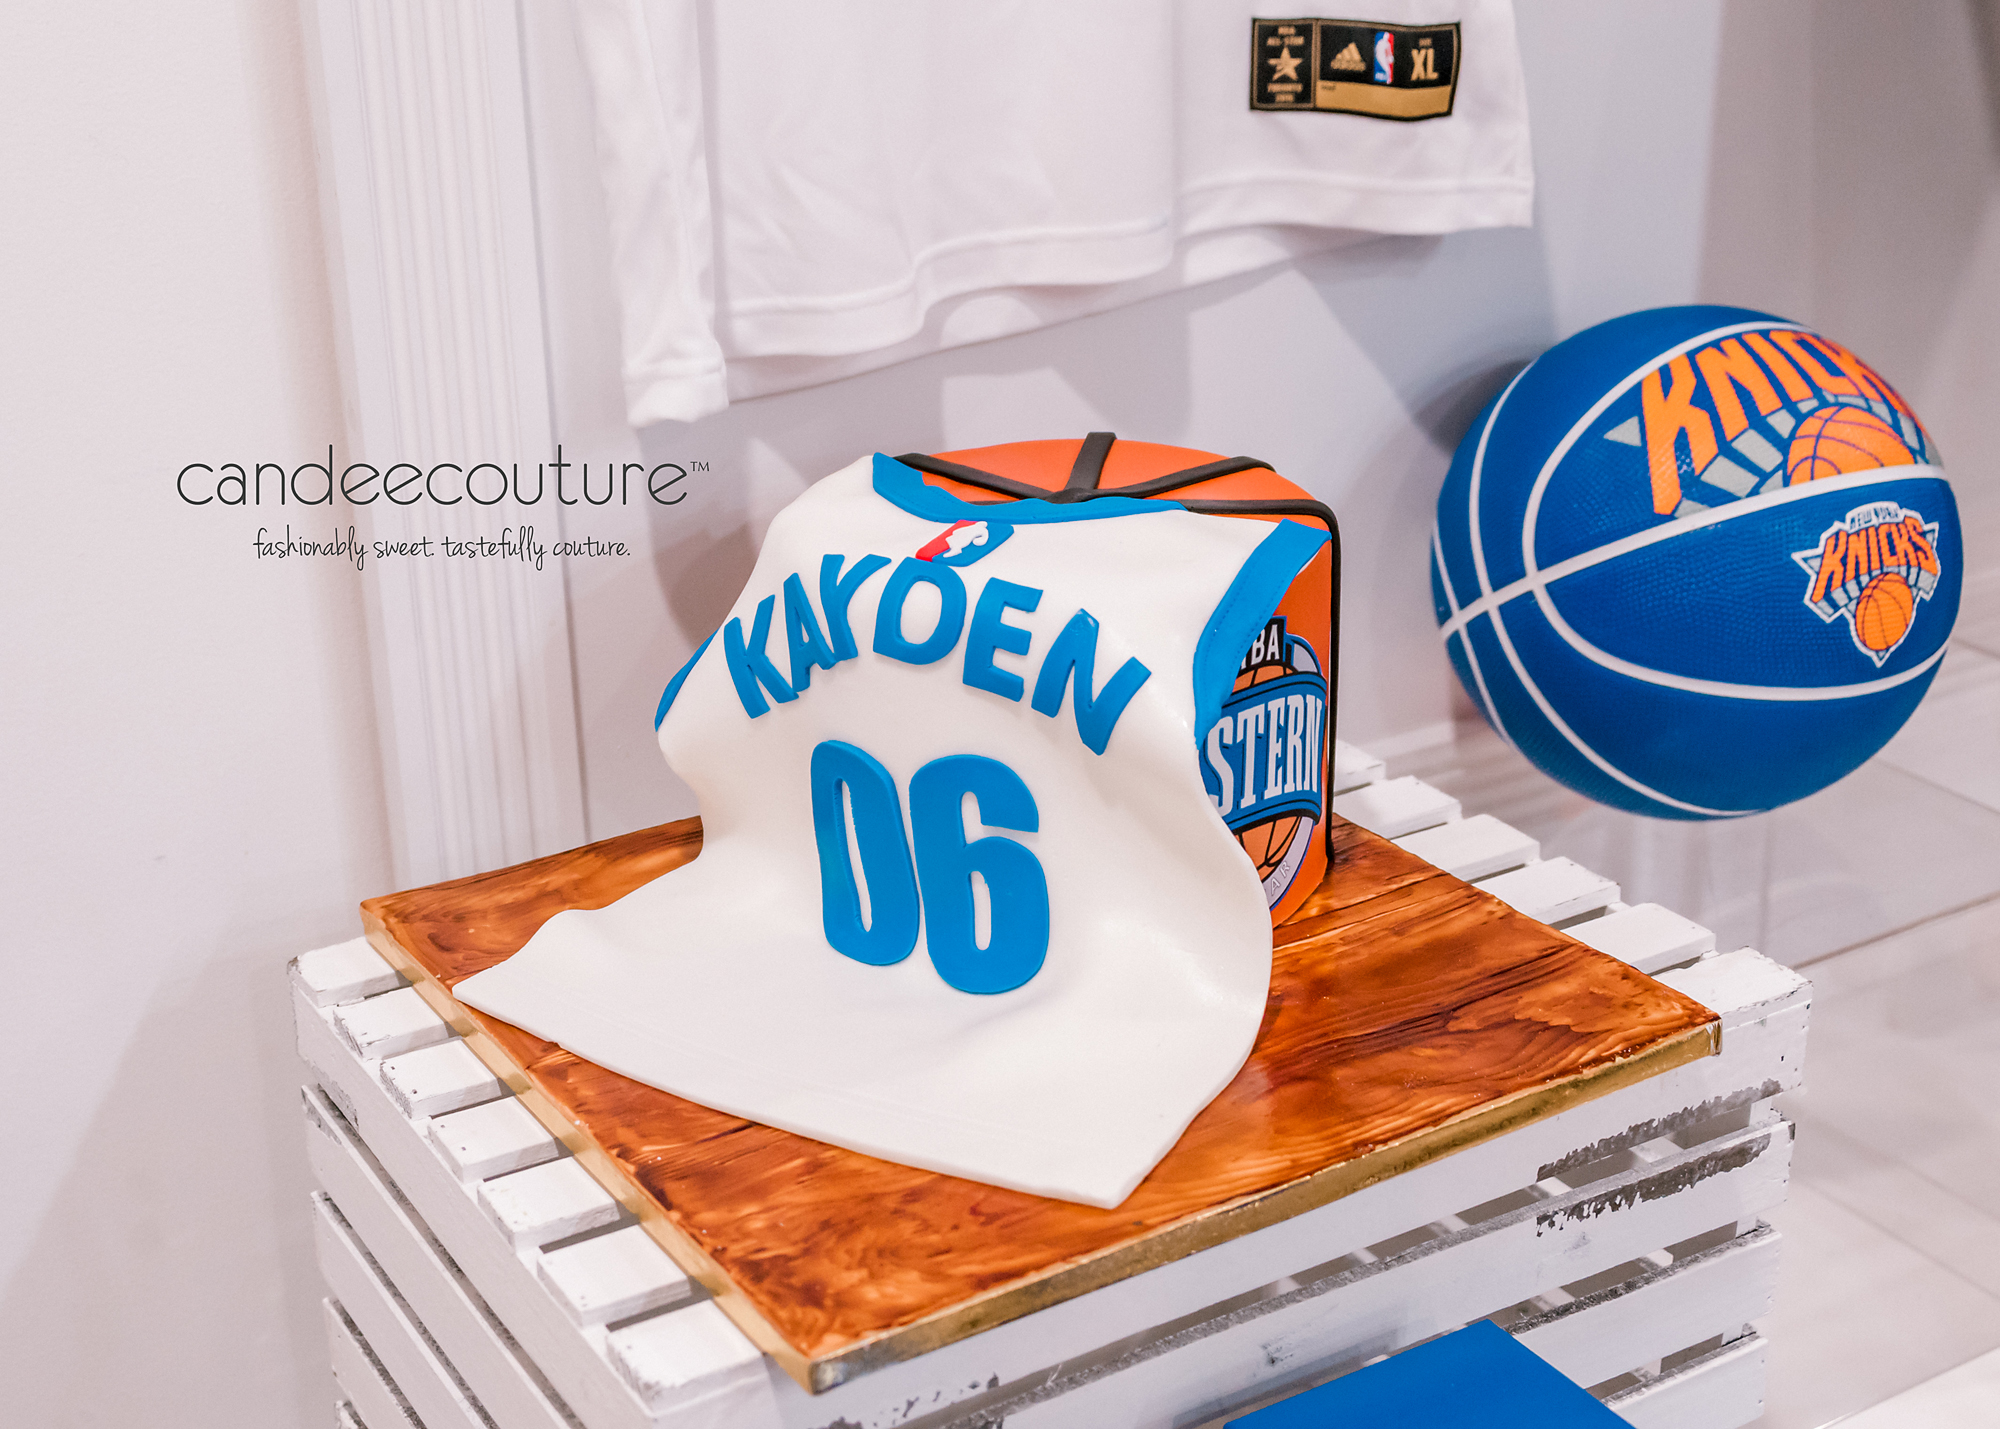 Basketball cake, NBA basketball cake, NBA All-star cake, eastern conference cake, NBA eastern conference cake, NBA eastern conference all-star cake, Dessert table, sweet table, nba theme table, nba all-star theme table, new York knicks dessert table, knicks sweet table, nba themed party, nba all-star theme party, birthday, nba all-star theme, nba cake, basketball, basketball desserts